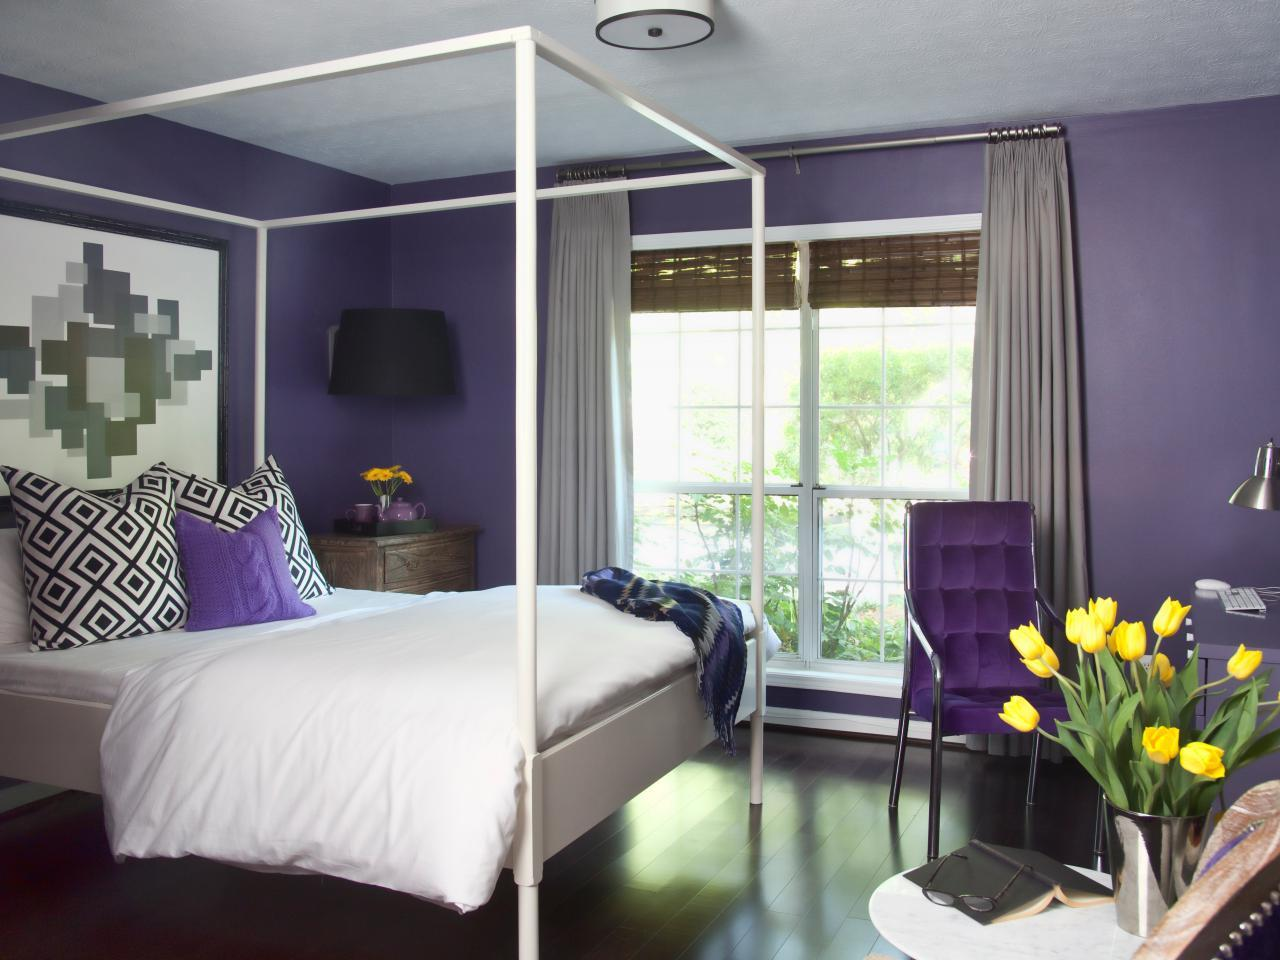 bedroom color combos Master Bedroom Color Combinations: Pictures, Options & Ideas   HGTV 960 X 1280